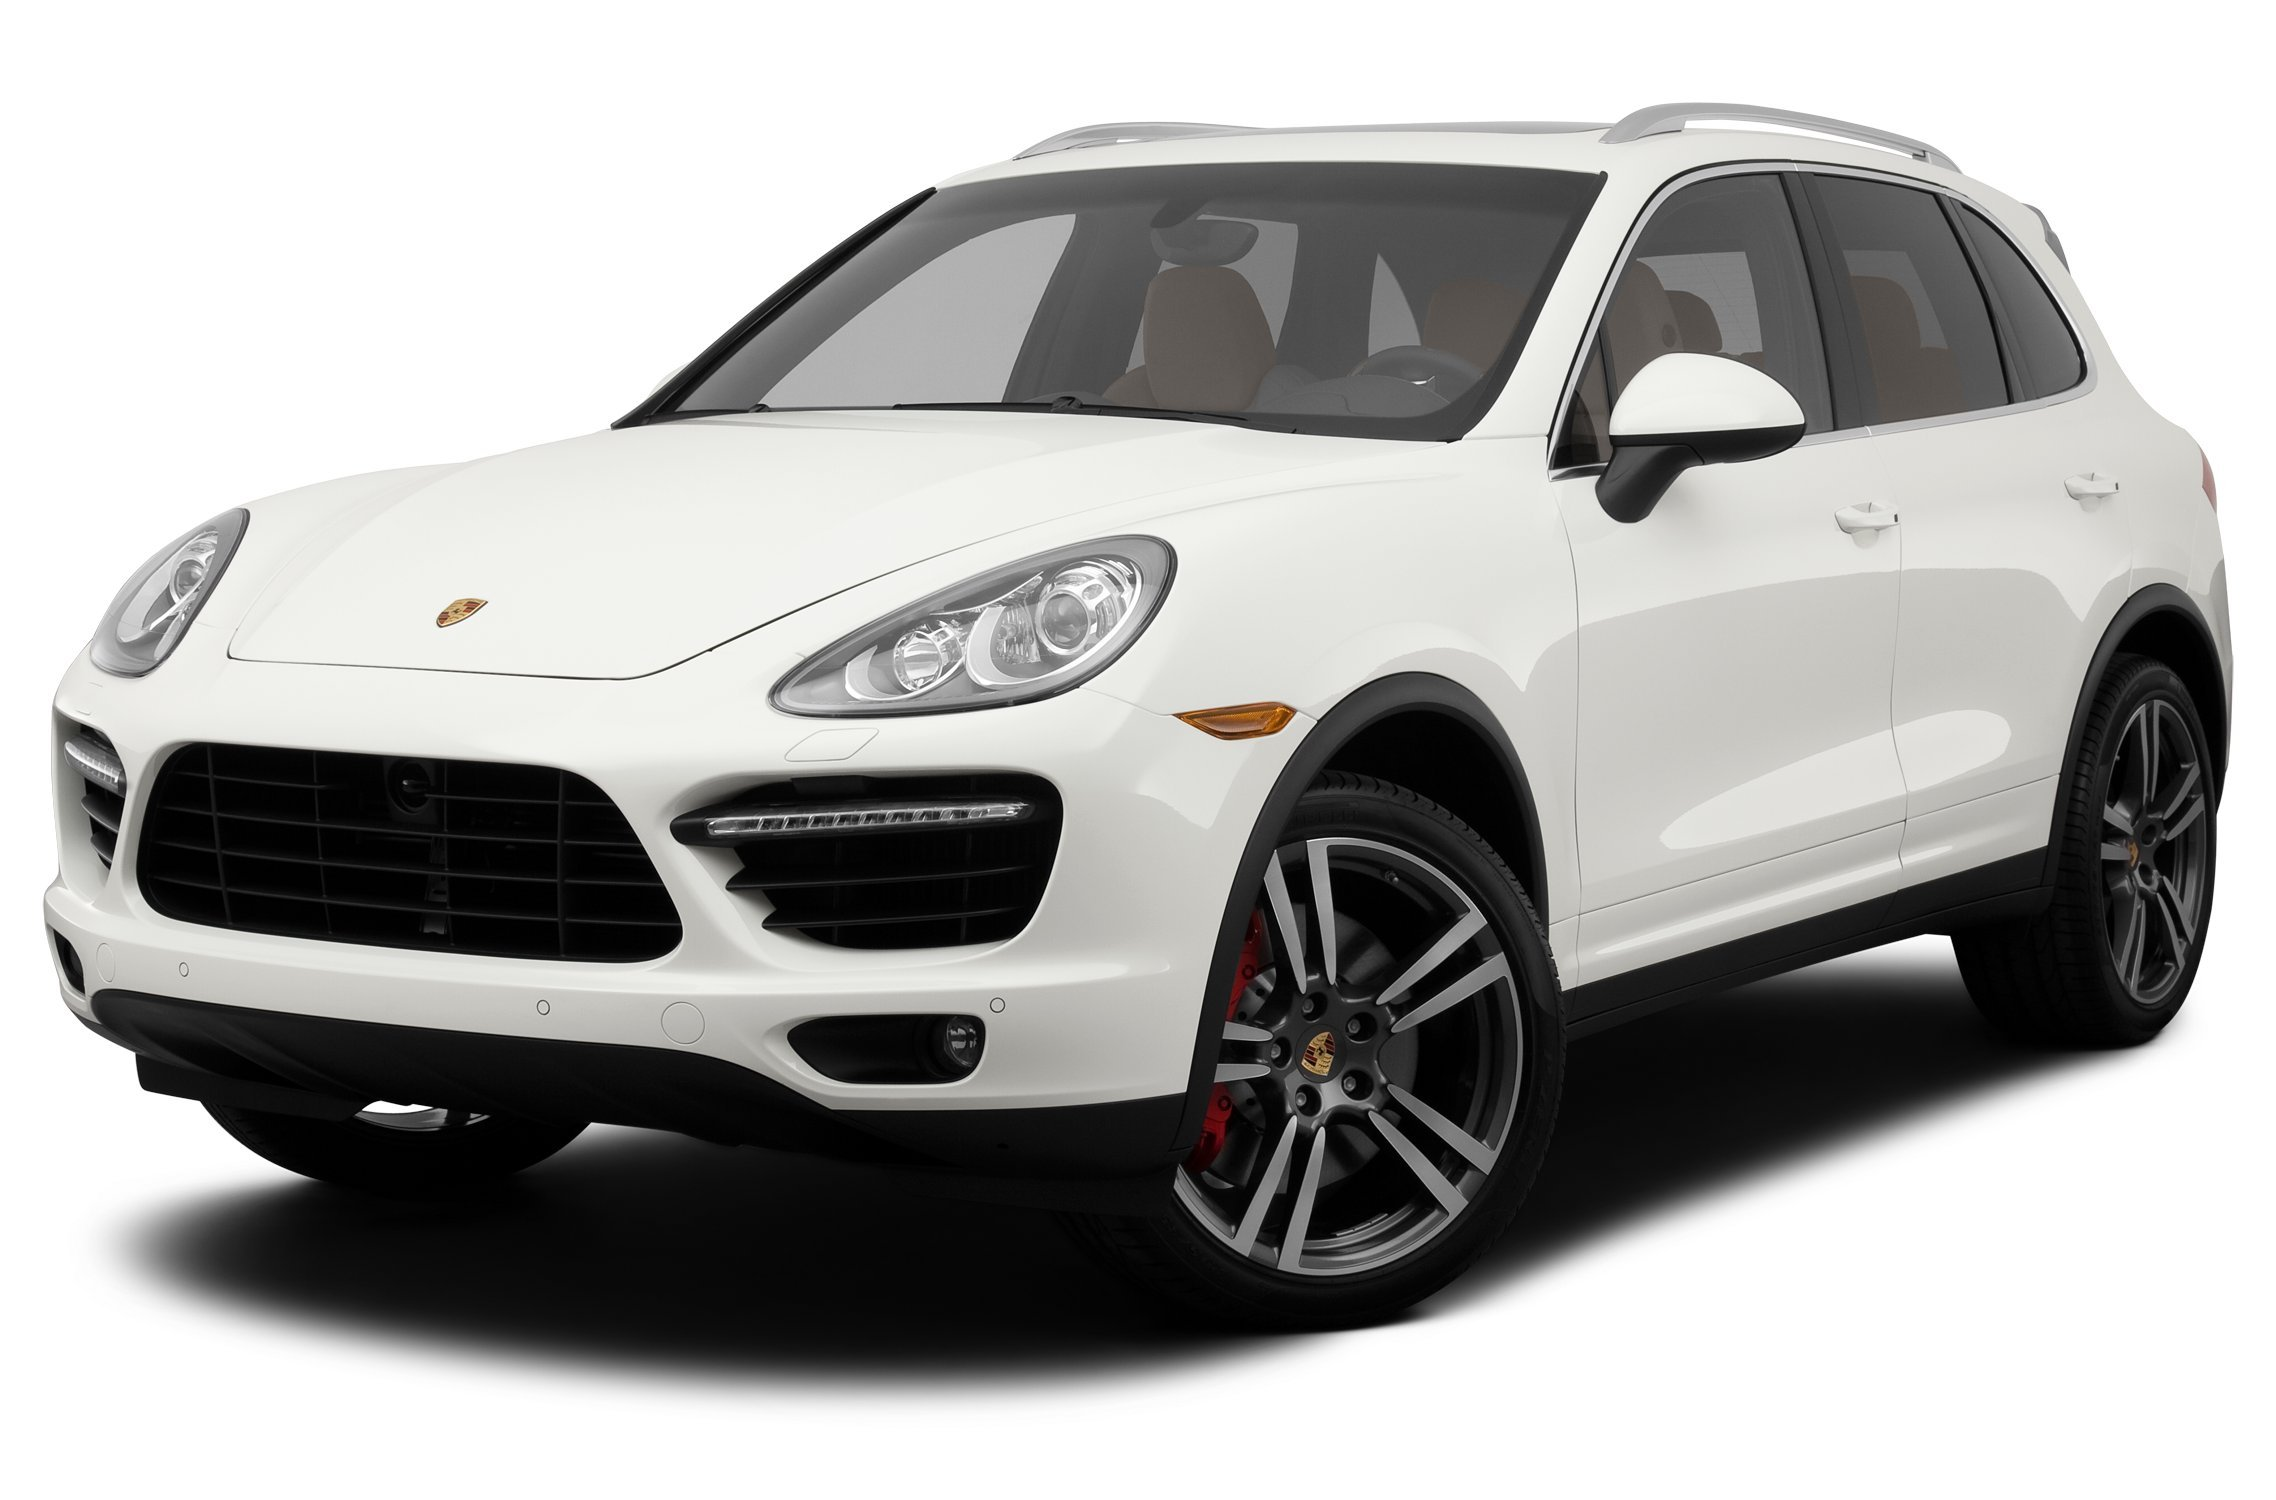 ... 2012 Porsche Cayenne, All Wheel Drive 4-Door Tiptronic ...